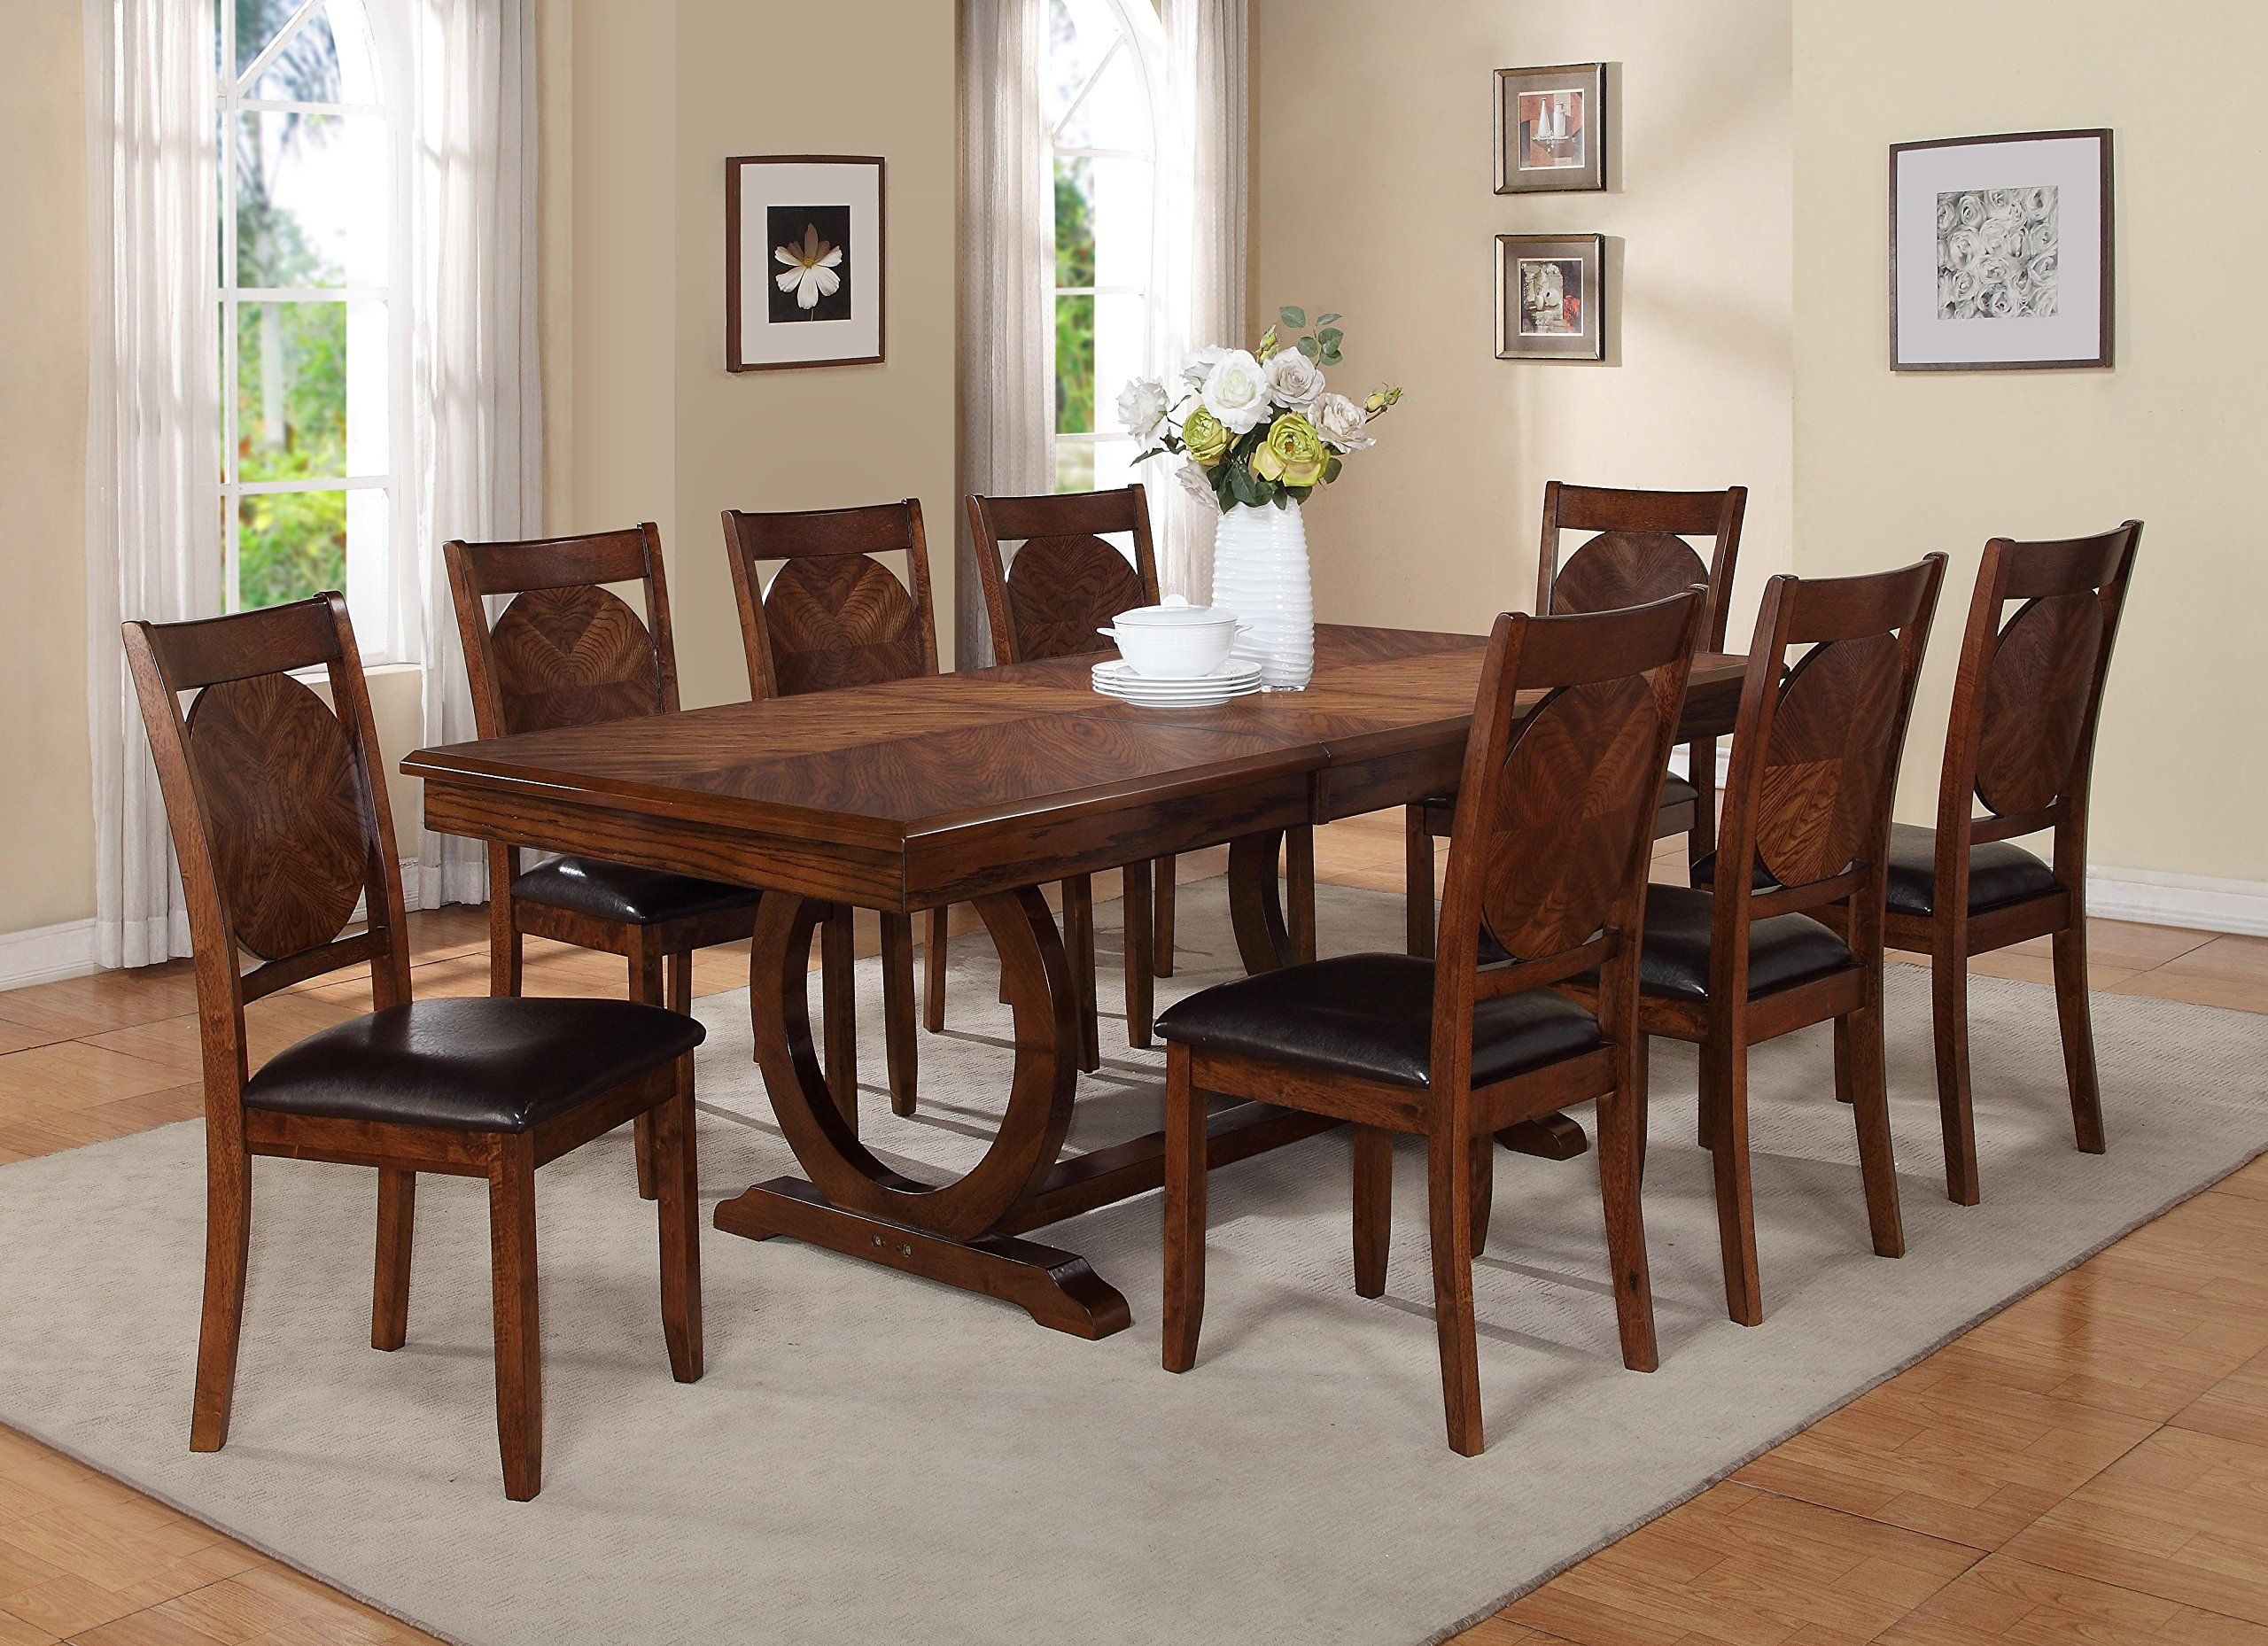 Milton Greens Stars 8878db Vernon Dining Table 84 By 42 By 30inch Dark Brown You Can Find Round Dining Room Sets Dining Table In Kitchen Dining Room Table